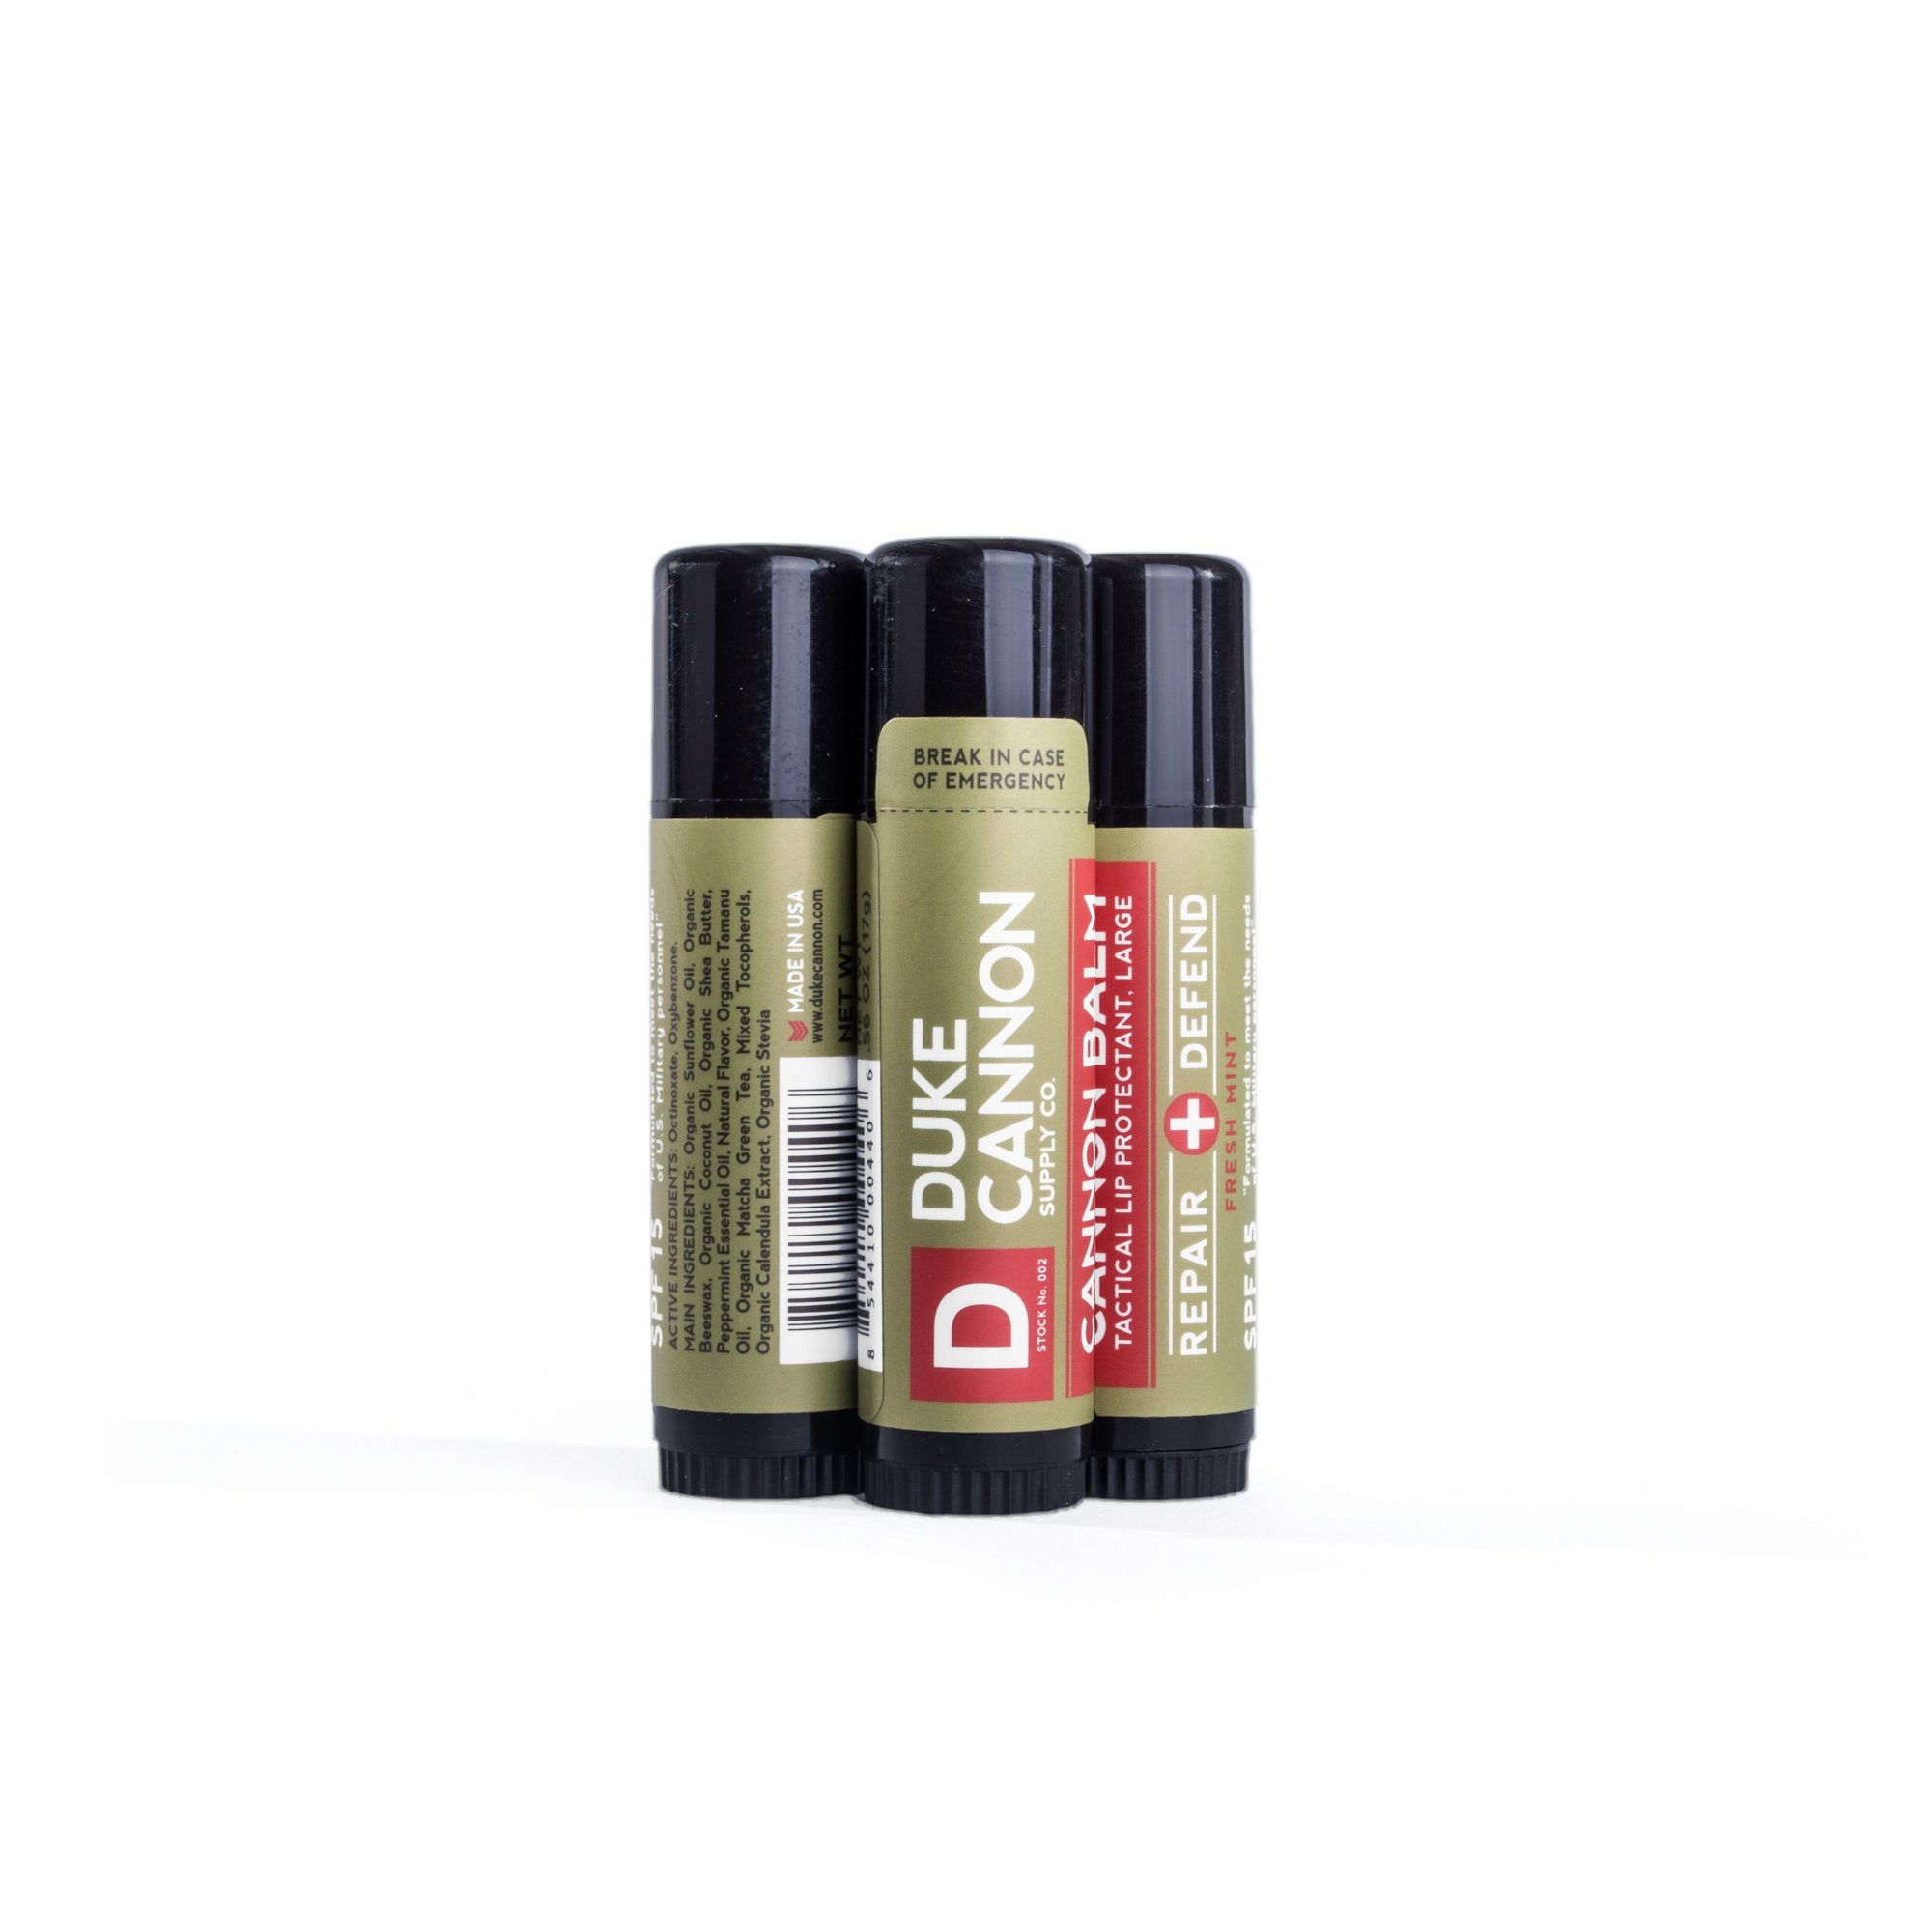 Duke Cannon Tactical Lip Protectant